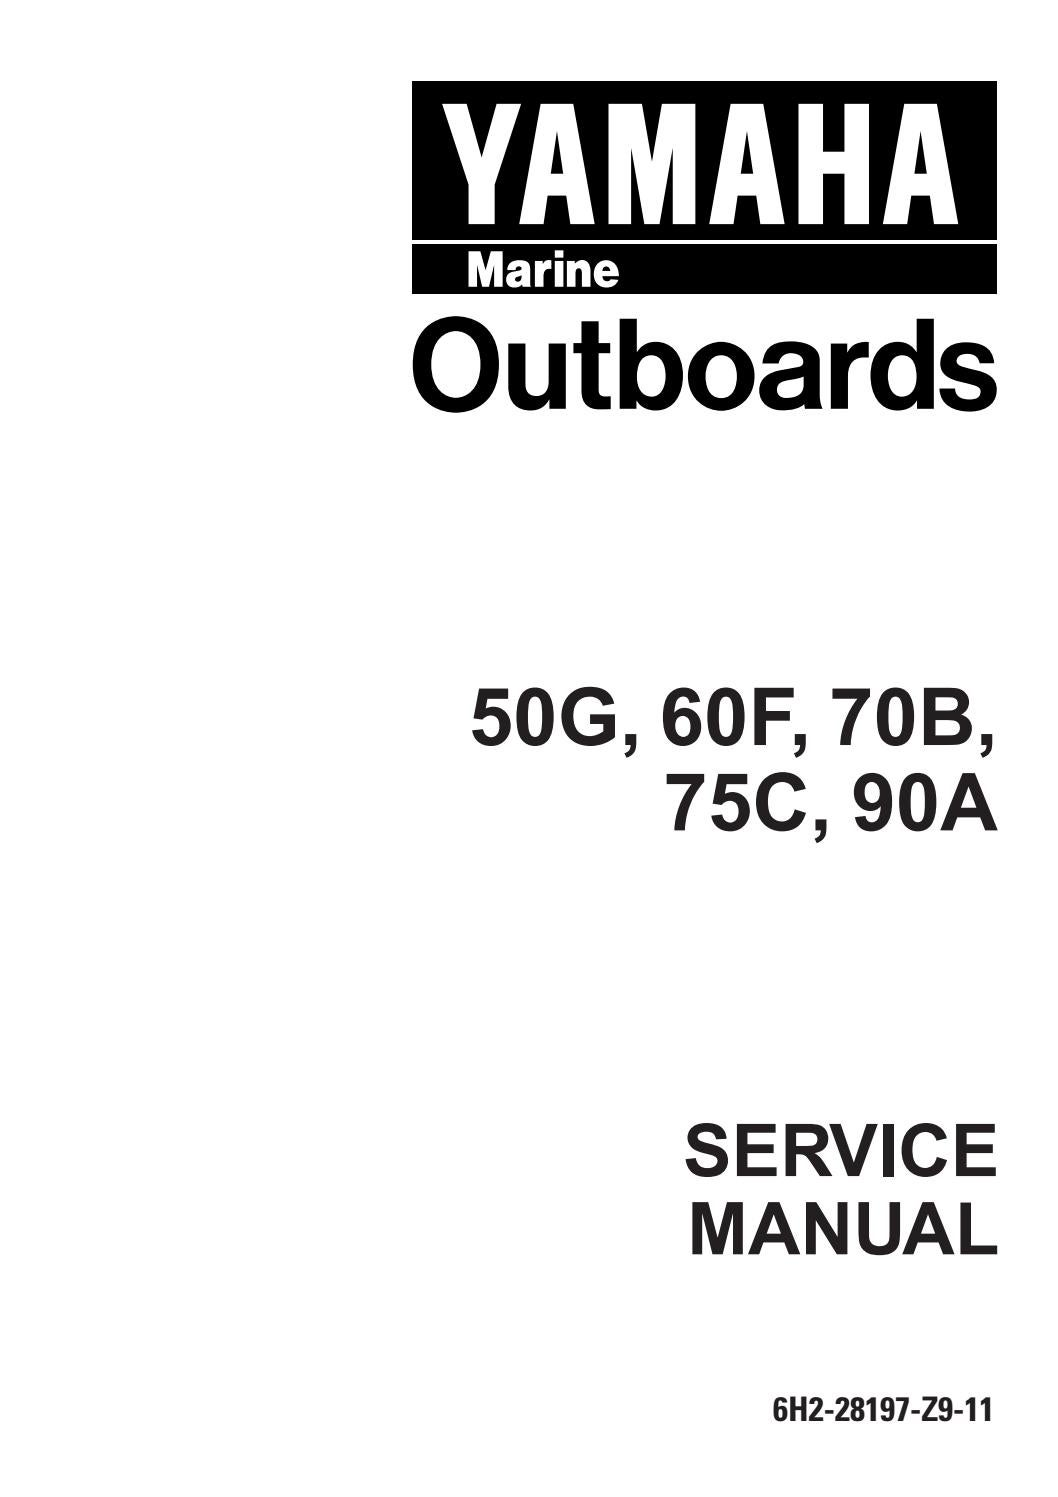 Yamaha 70beto, 70tr outboard service repair manual l